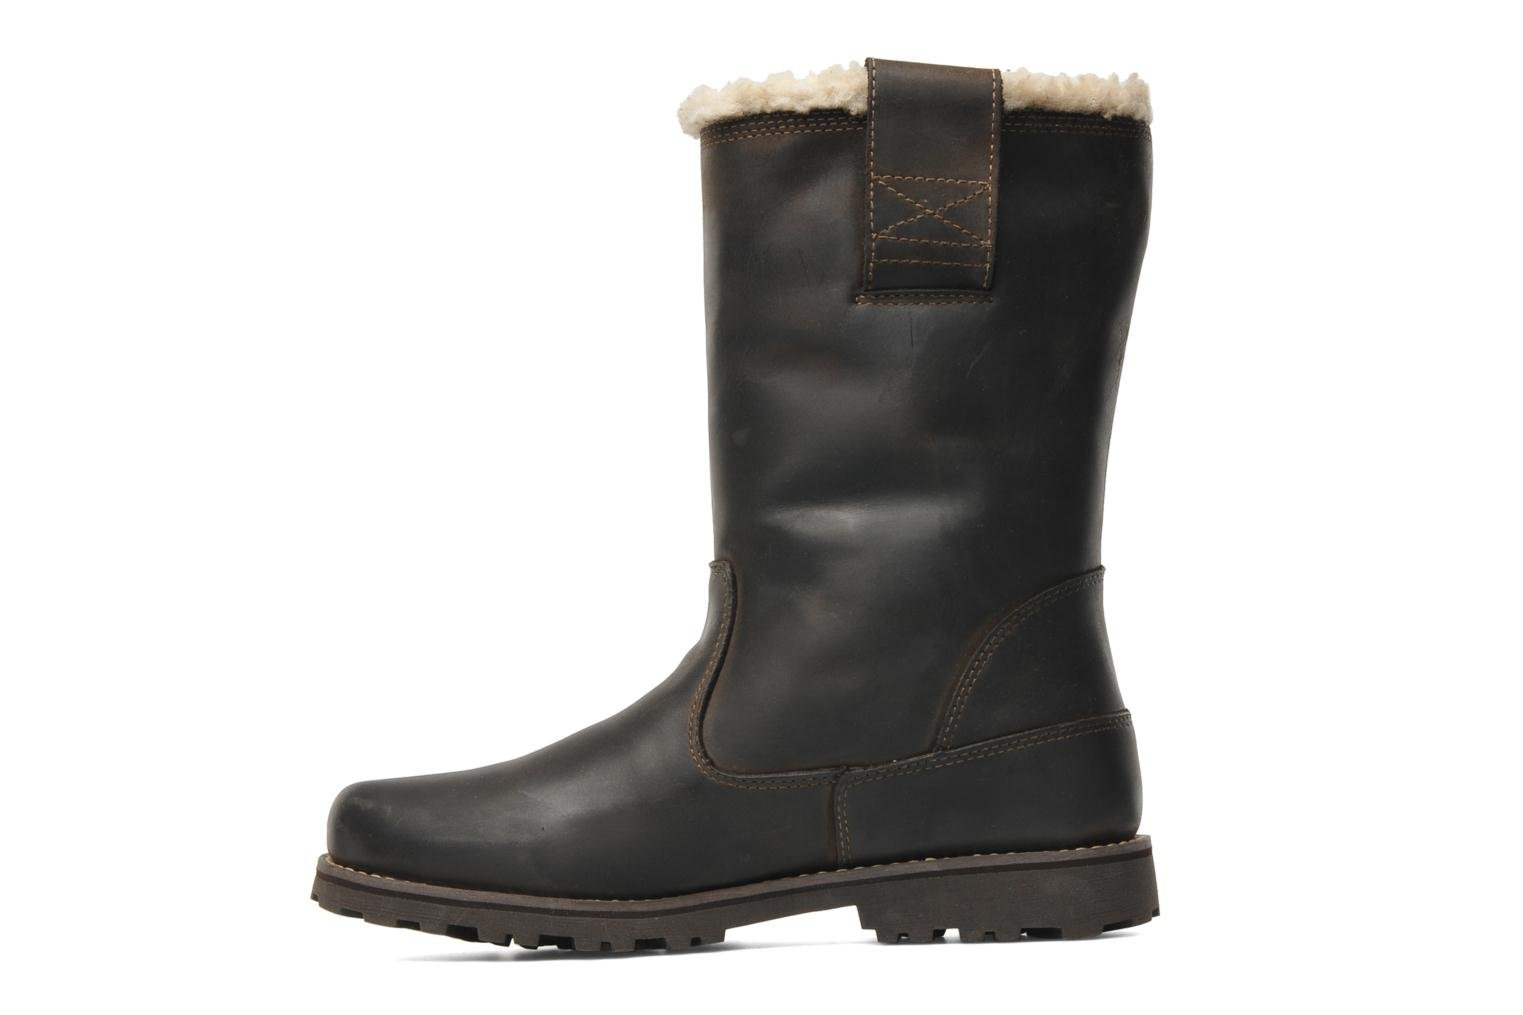 8 In Pull On WP Boot with Shearling Dark brown nubuck burnish